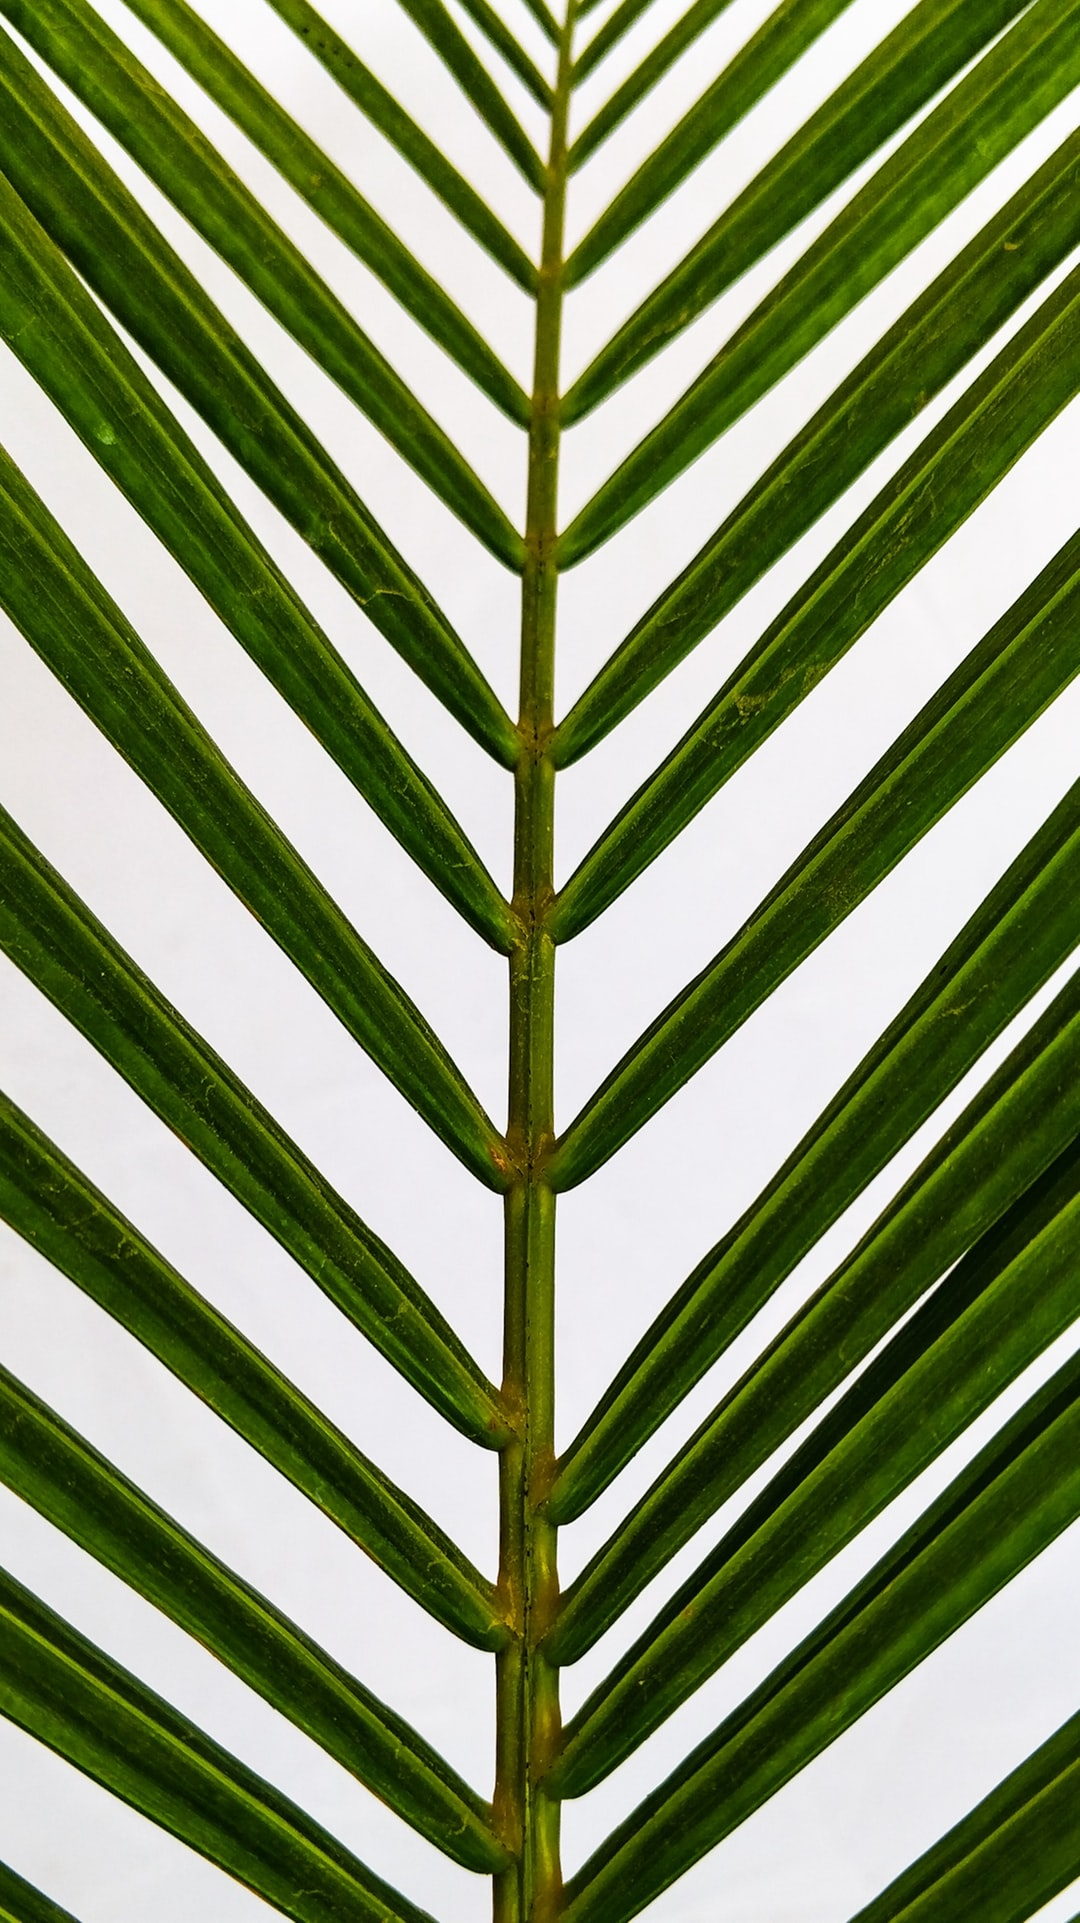 Close-up of palm leaves.